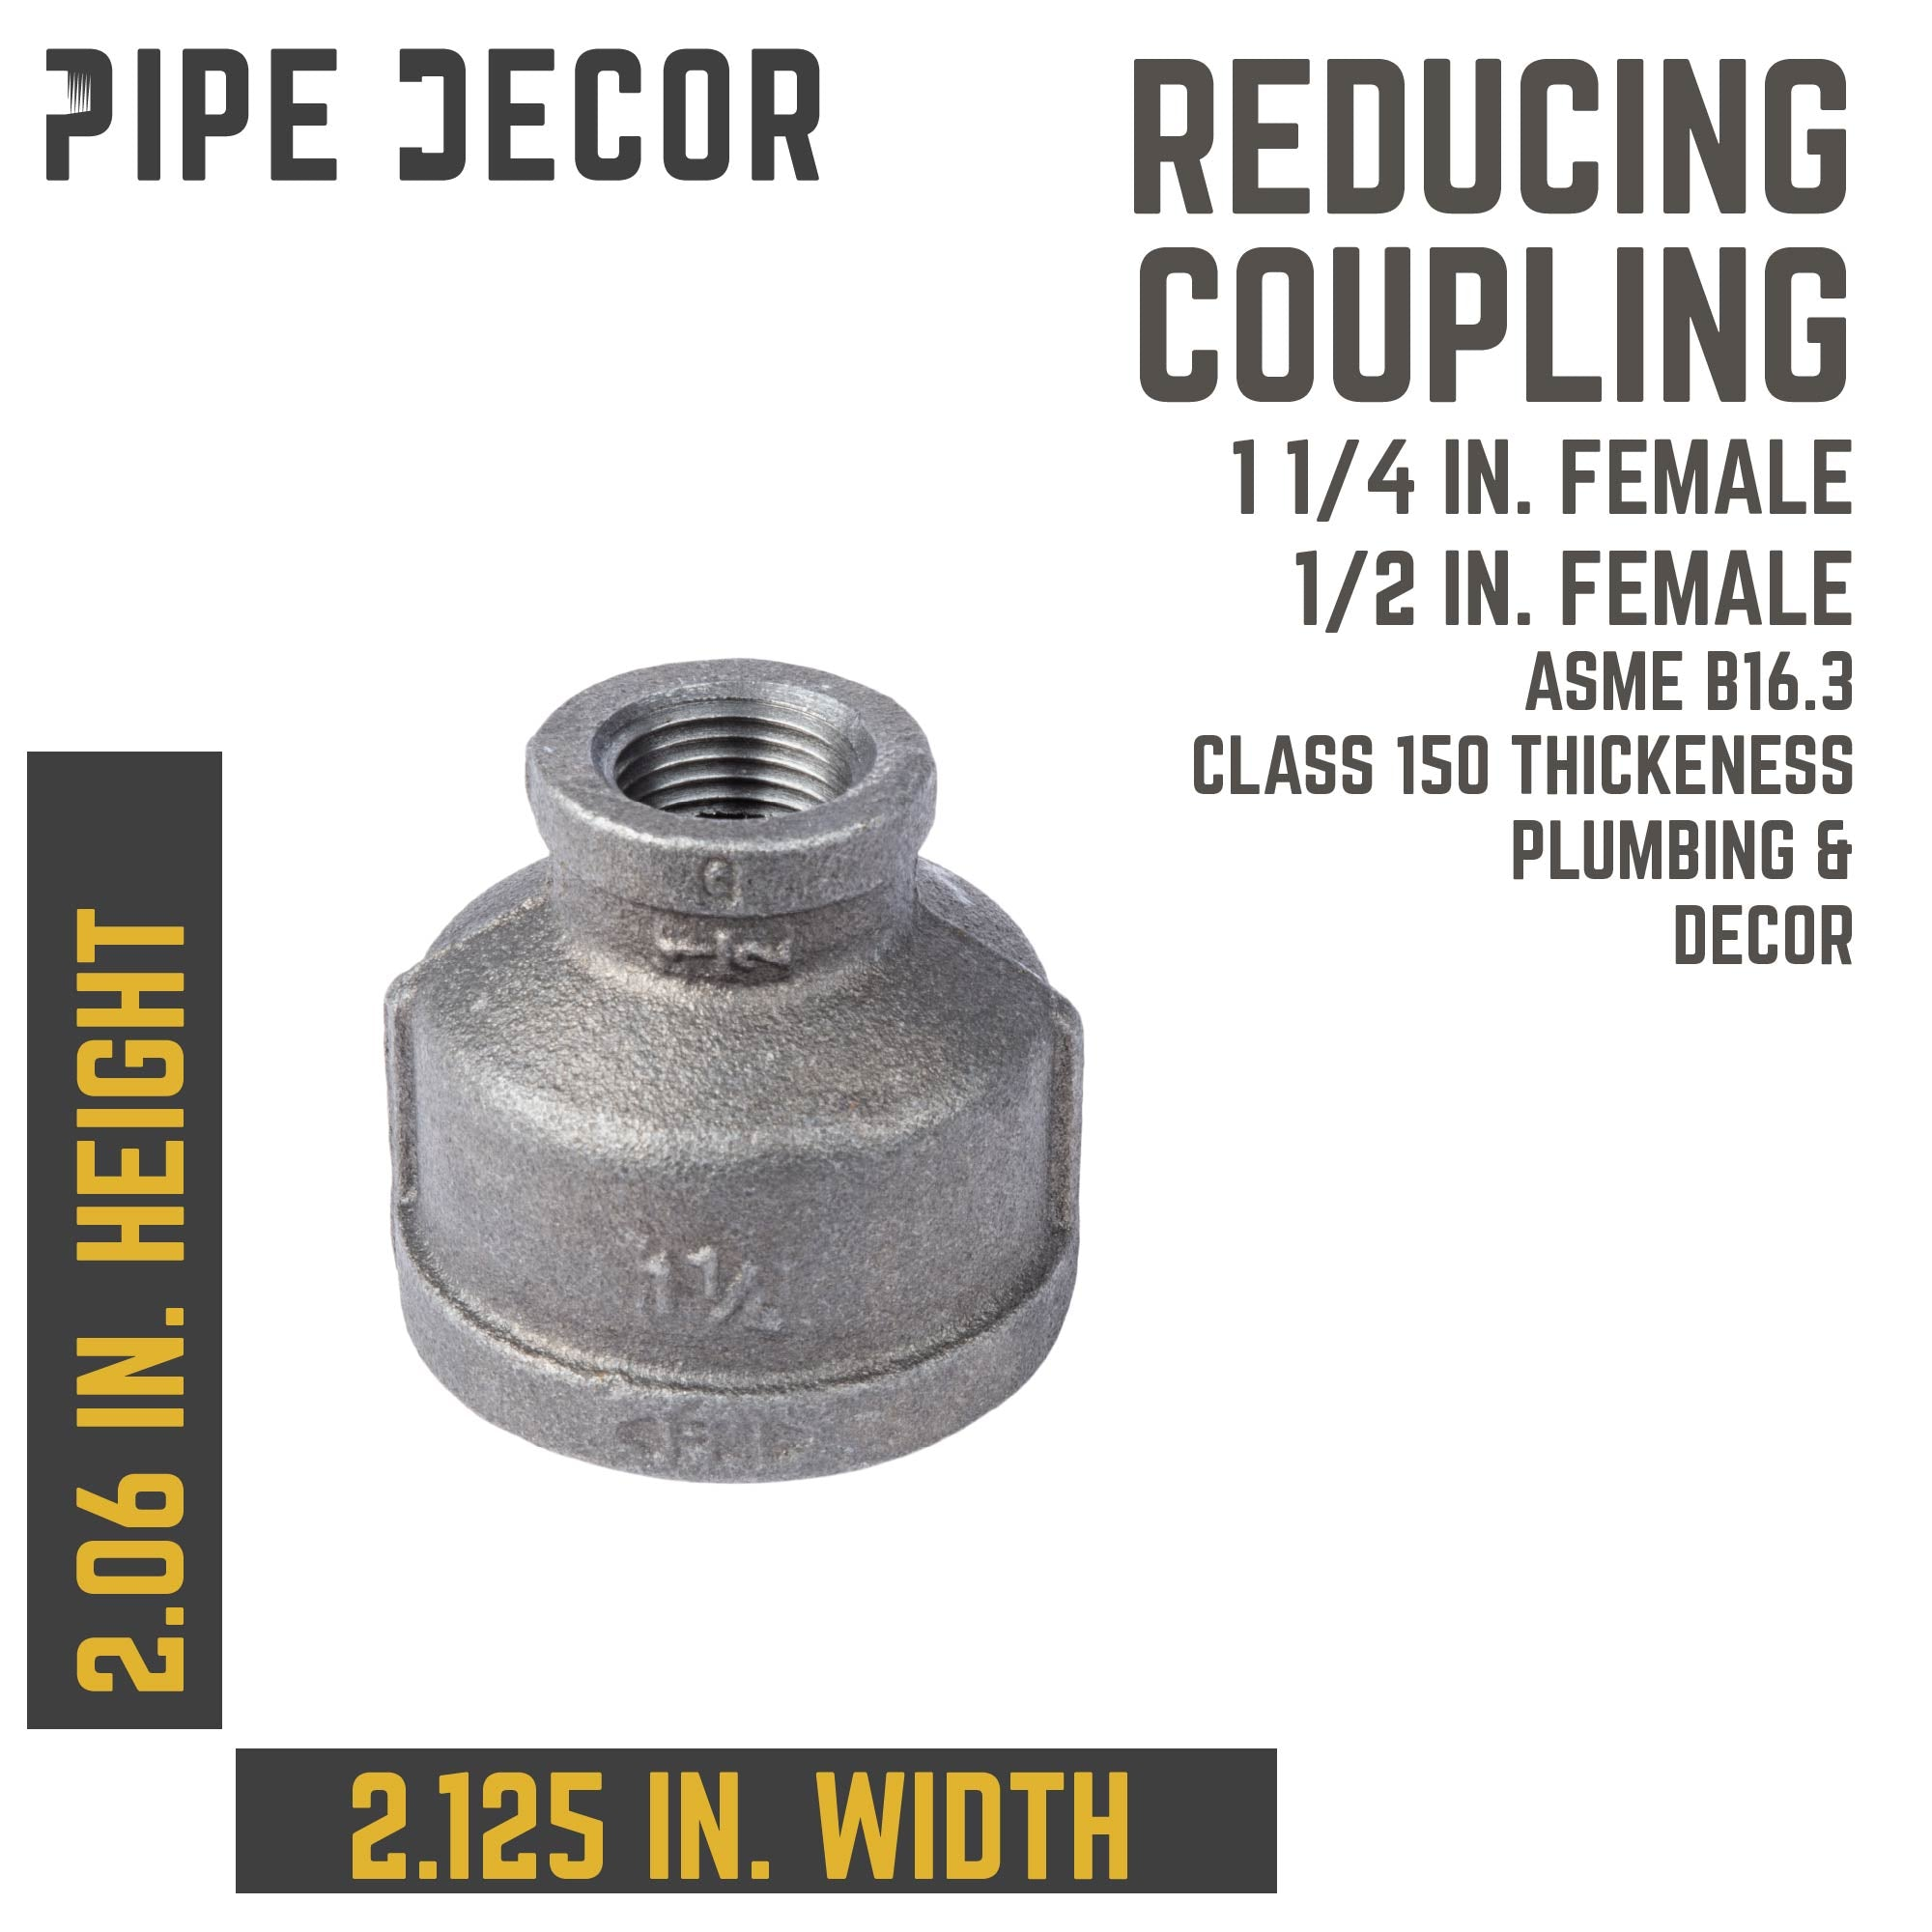 1 1/4 in. X 1/2 in. Black Reducing Coupling - Pipe Decor